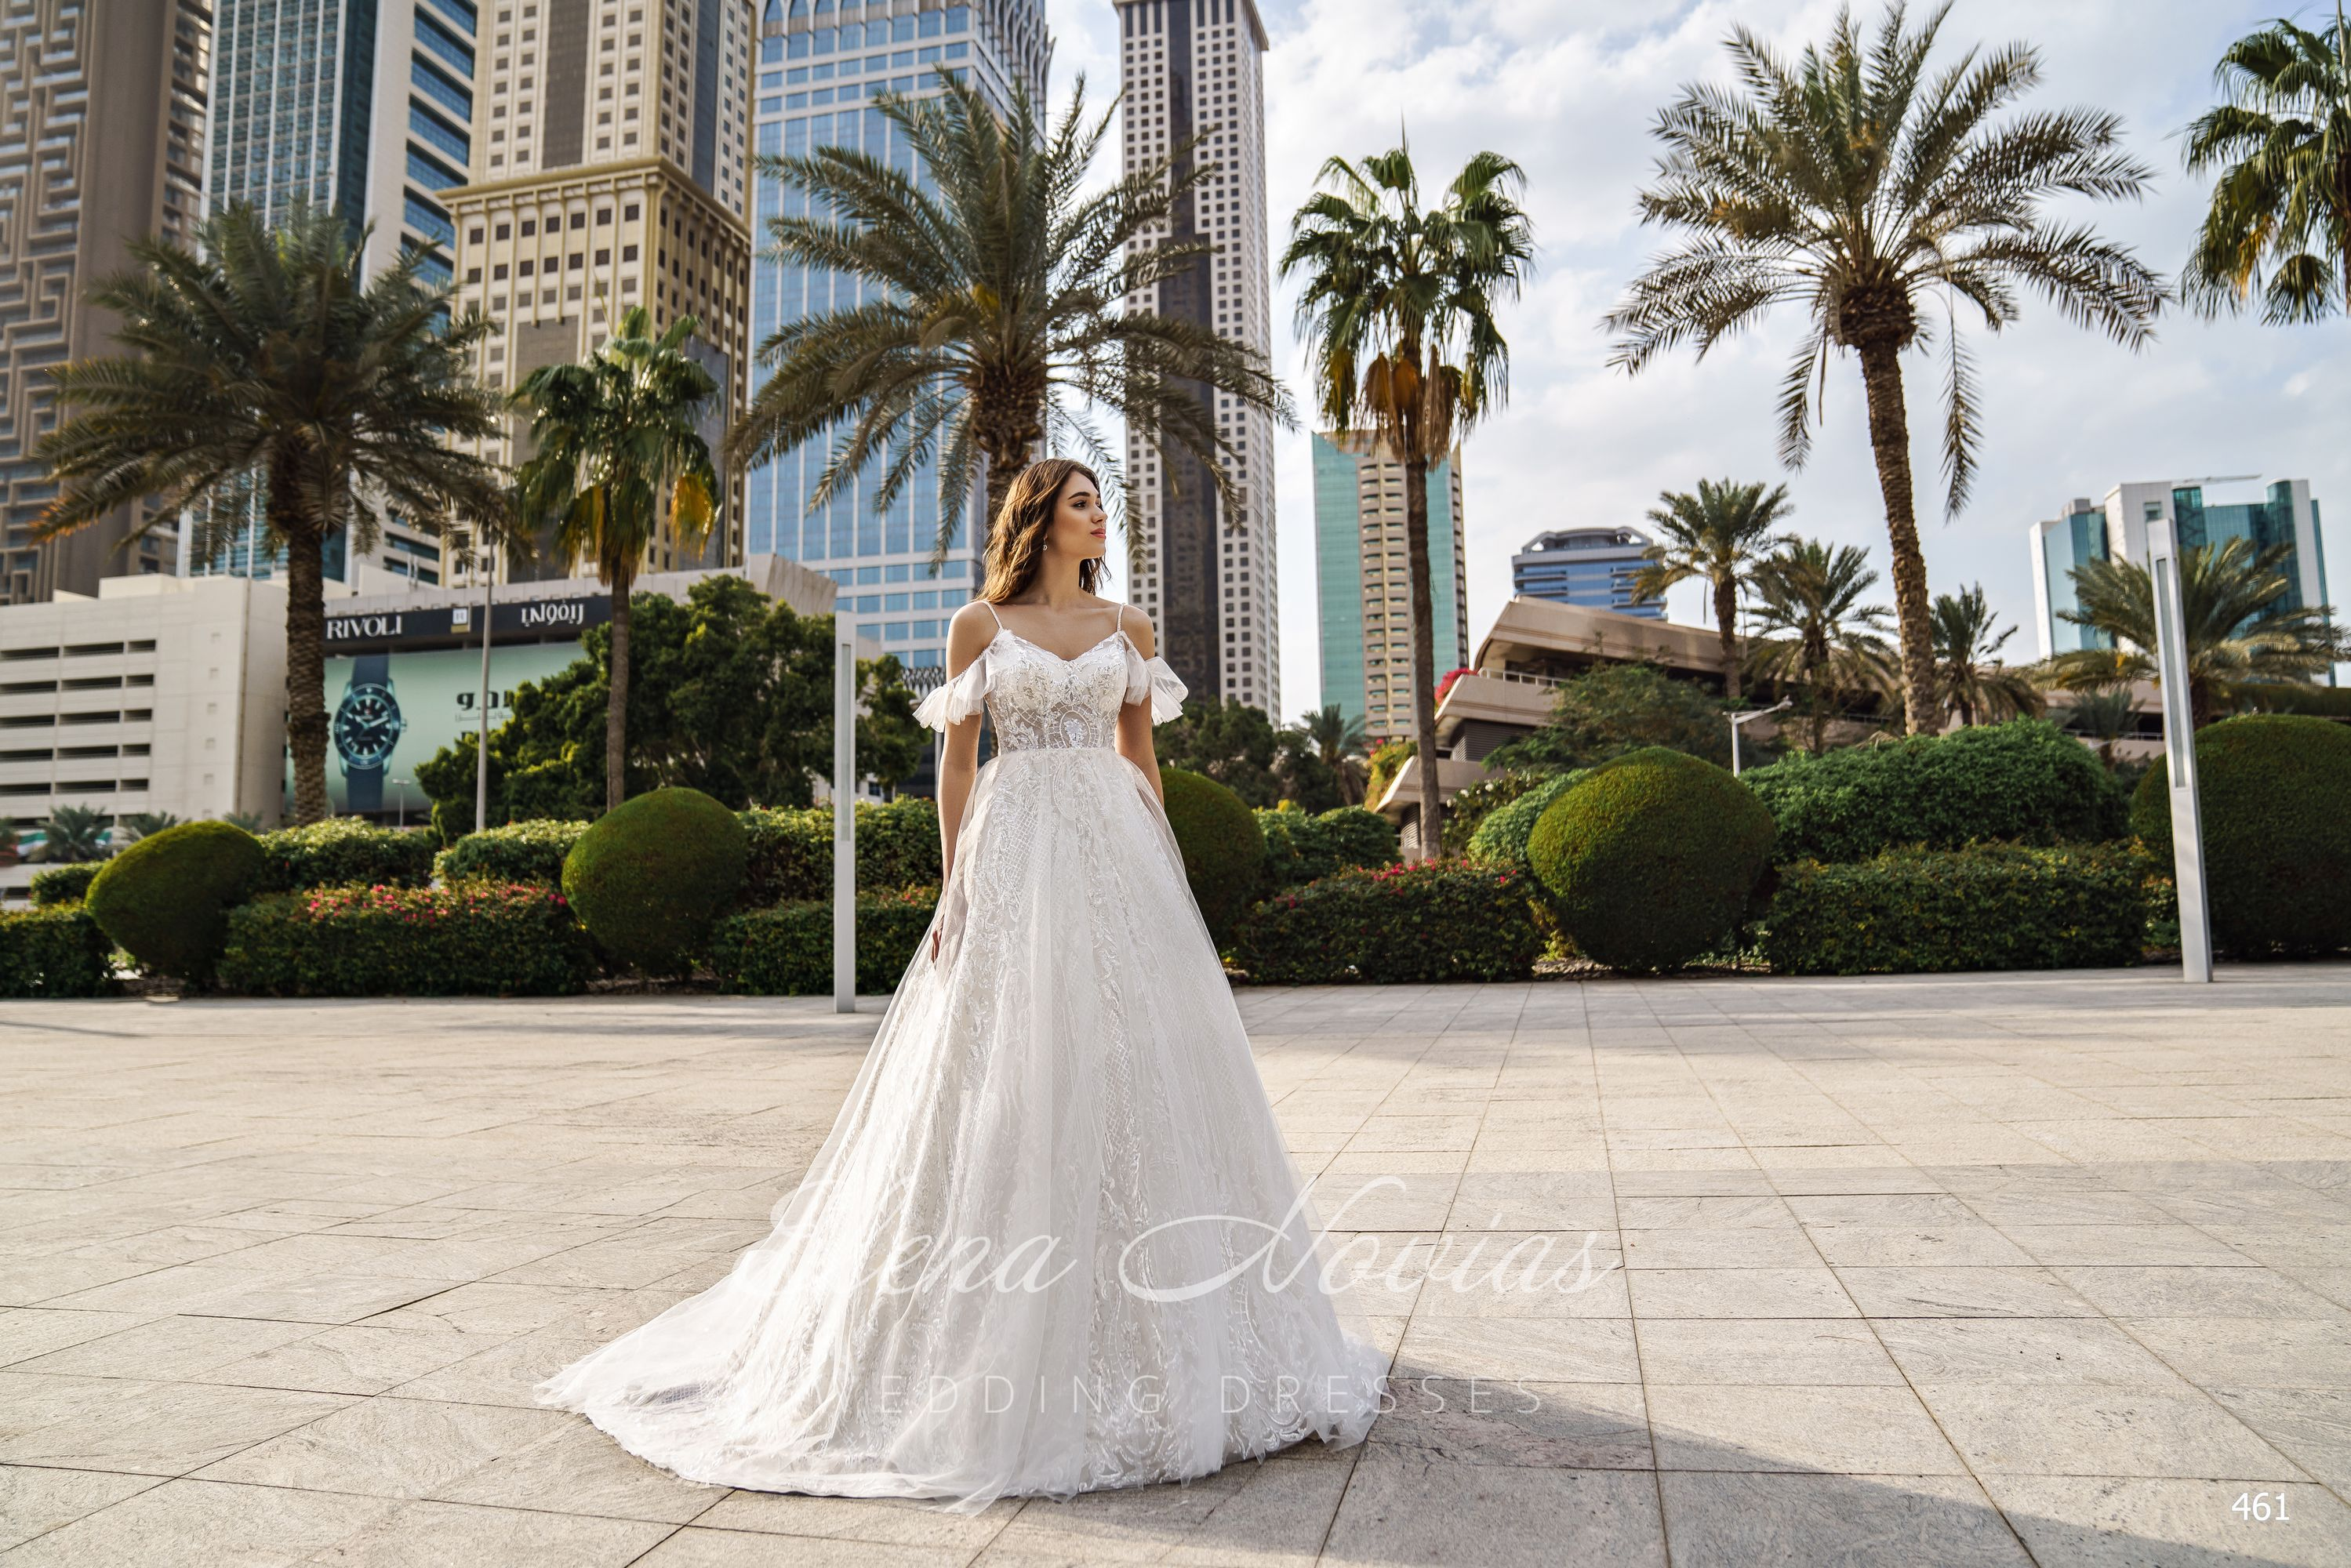 Wedding dresses 461 1